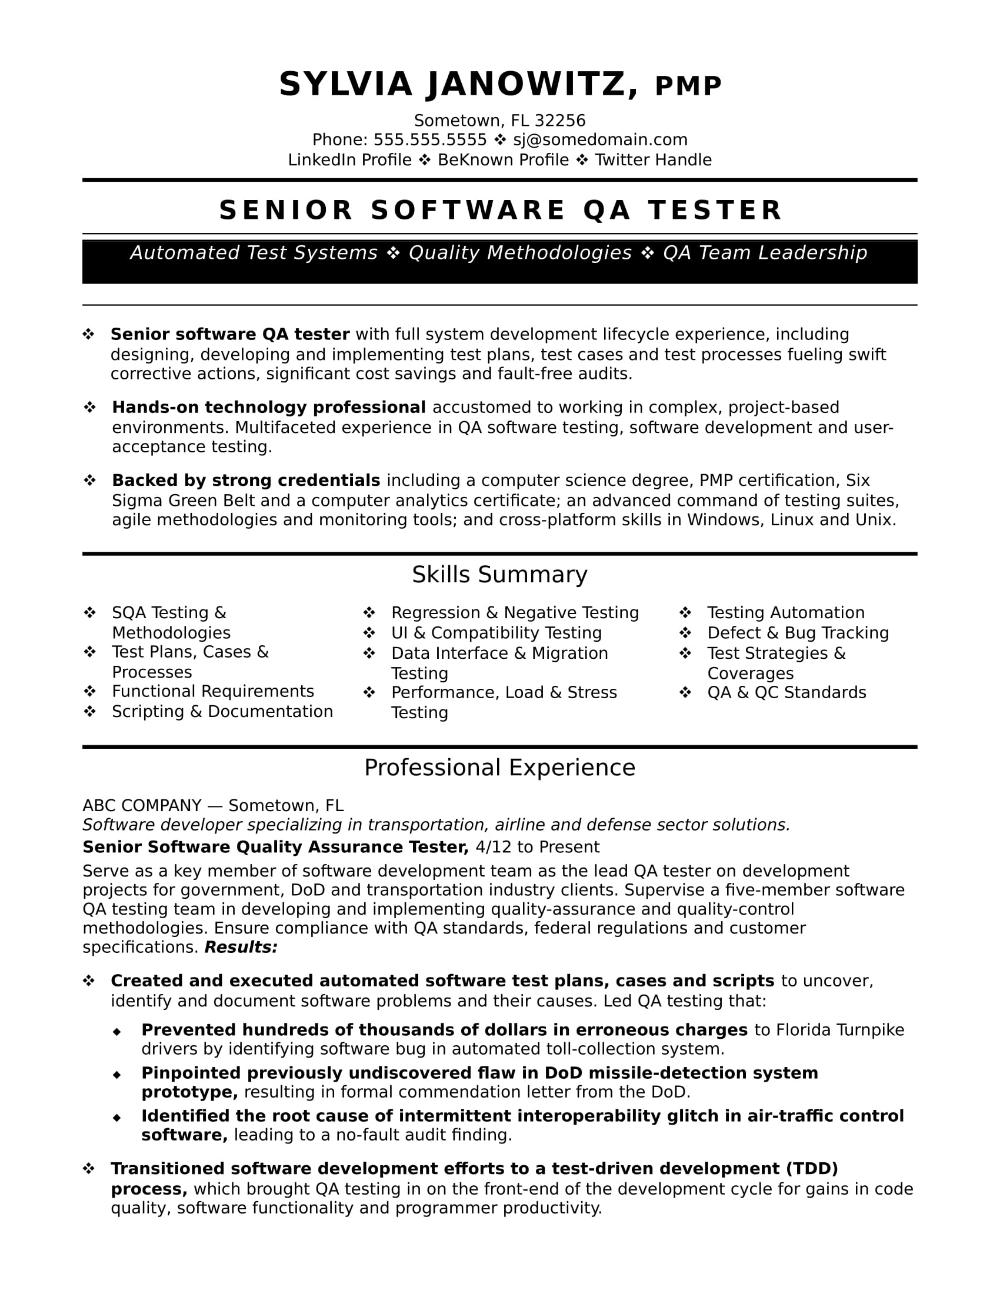 Experienced Qa Software Tester Resume Sample